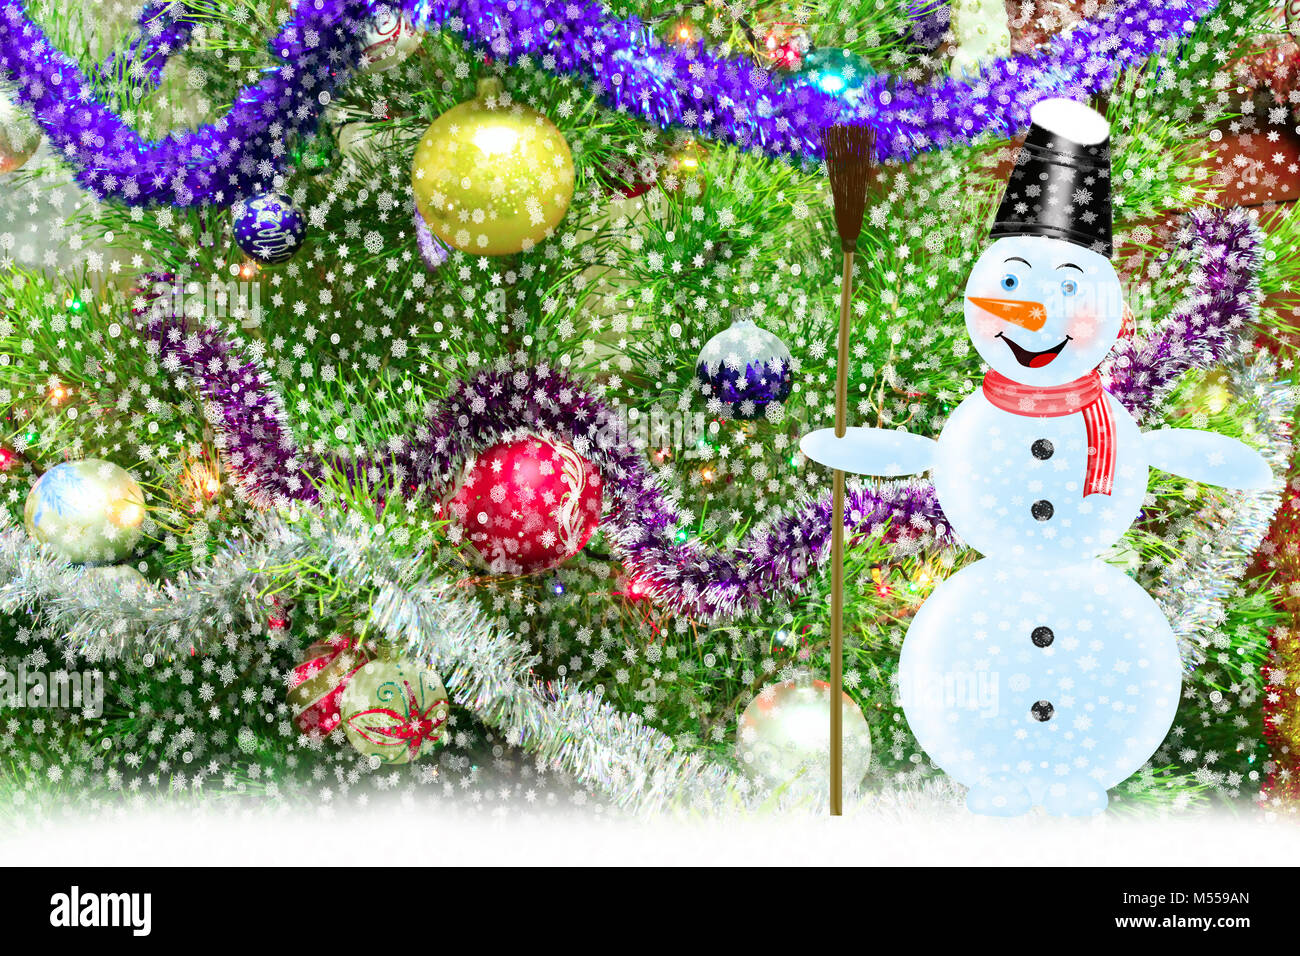 snowman at a harmonious and dressed up New Year's fur-tree - Stock Image